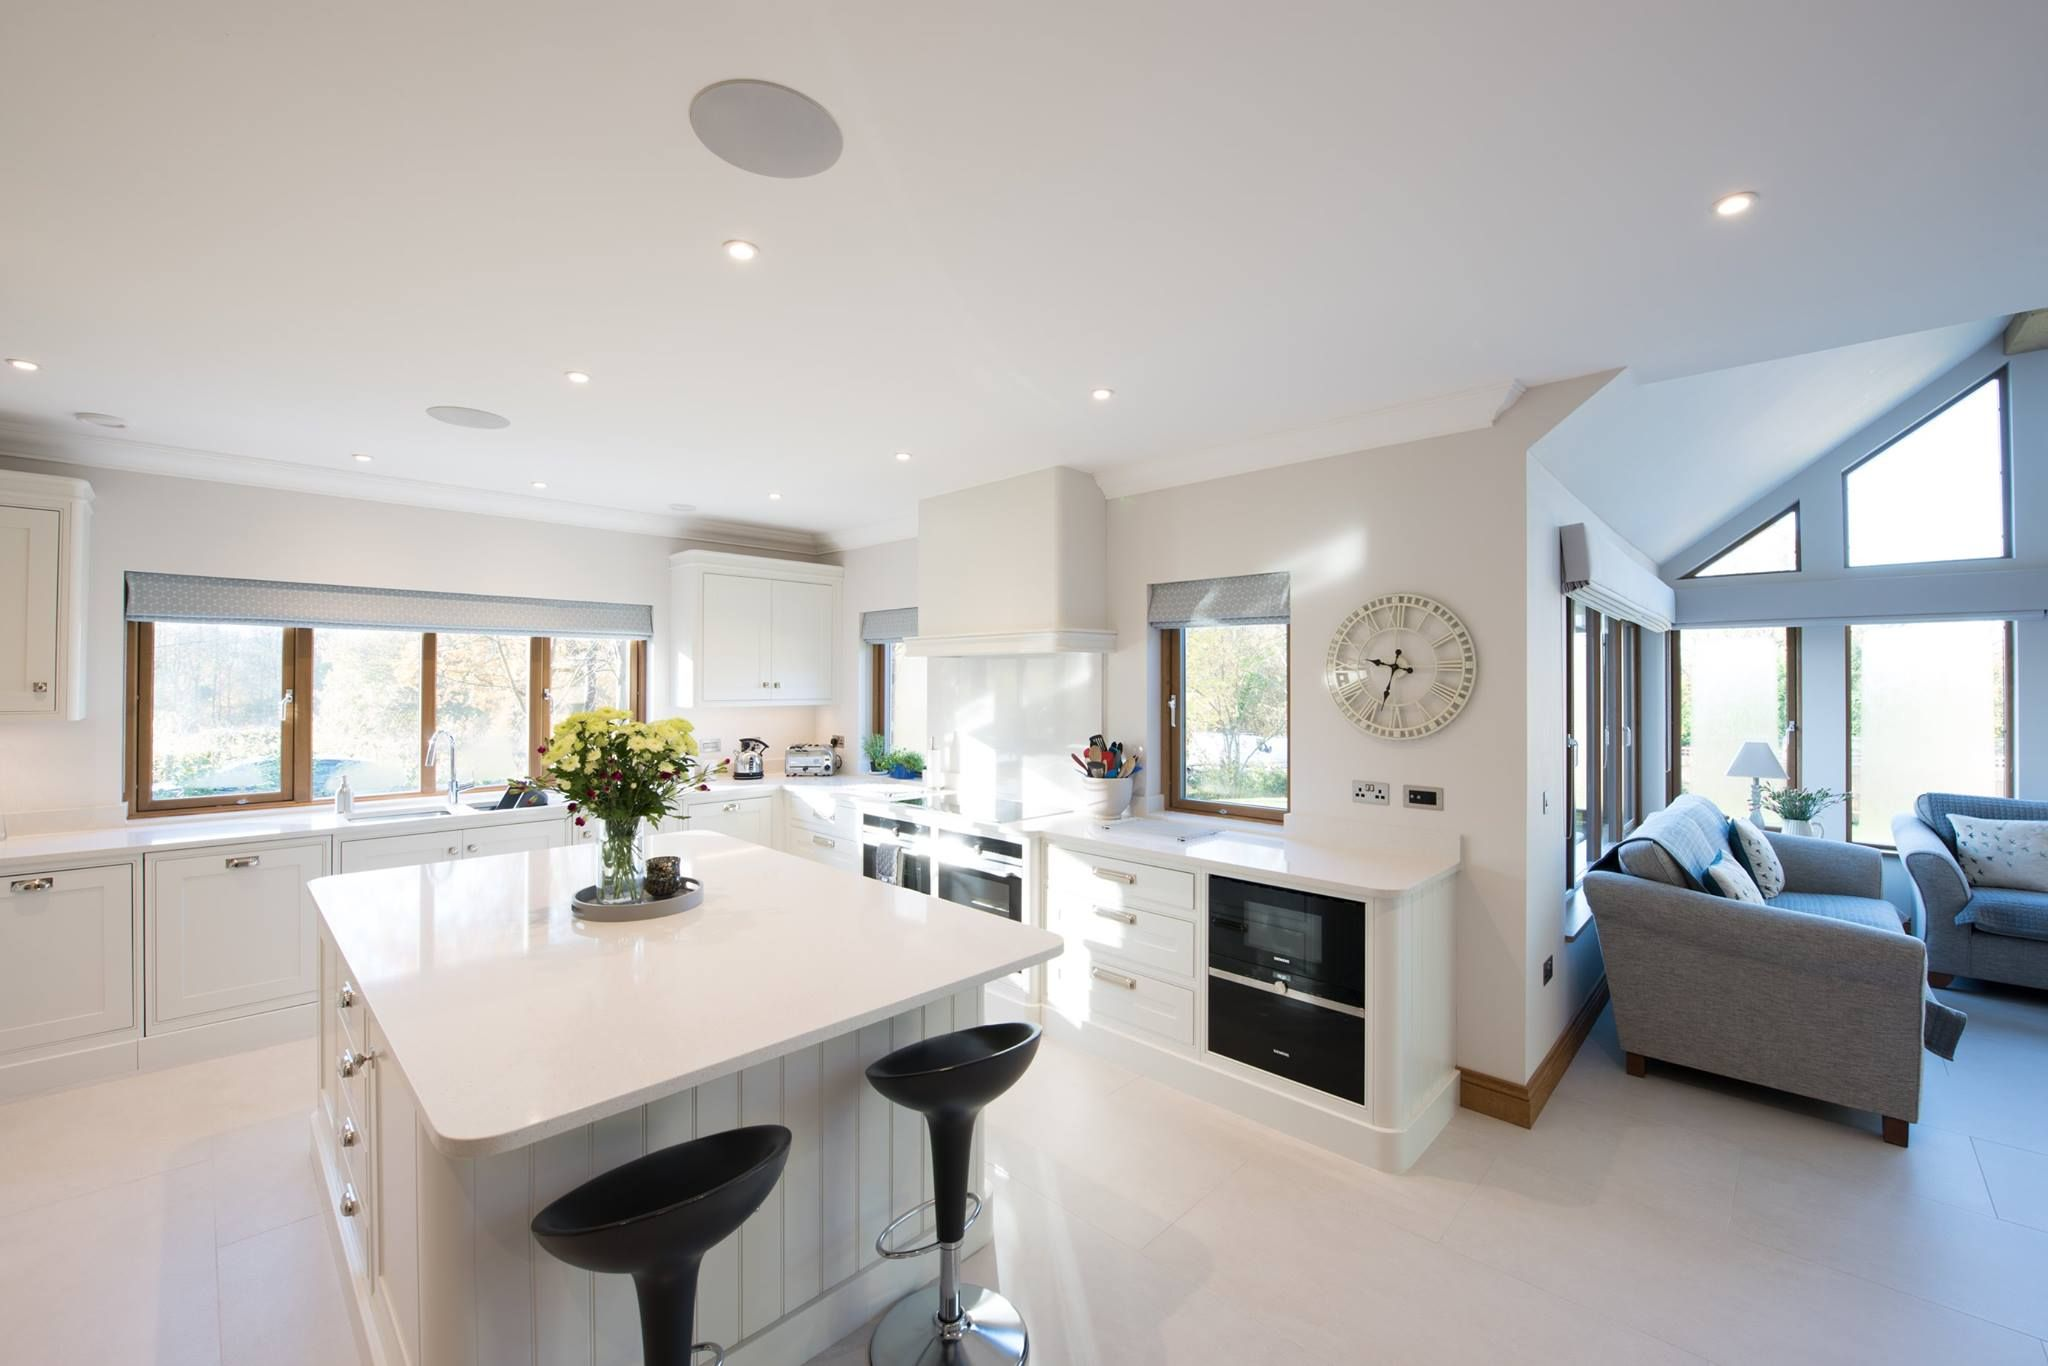 Light, bright and airy open plan kitchen. Dream home kitchen ...